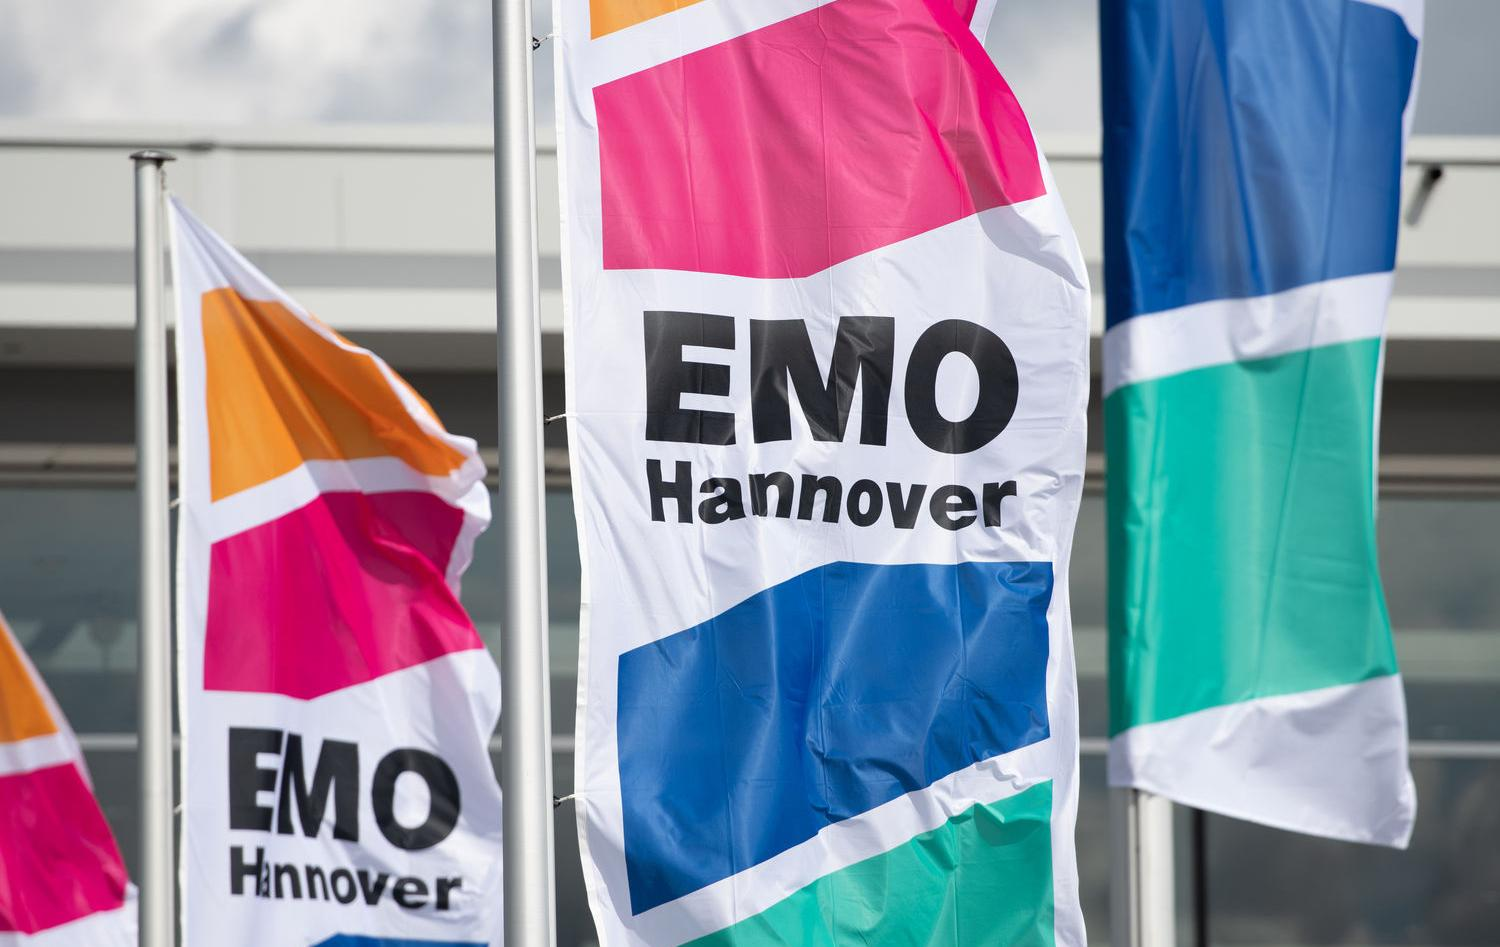 ScanTech AT EMO HANNOVER 2019 — 3D Printing Business Directory